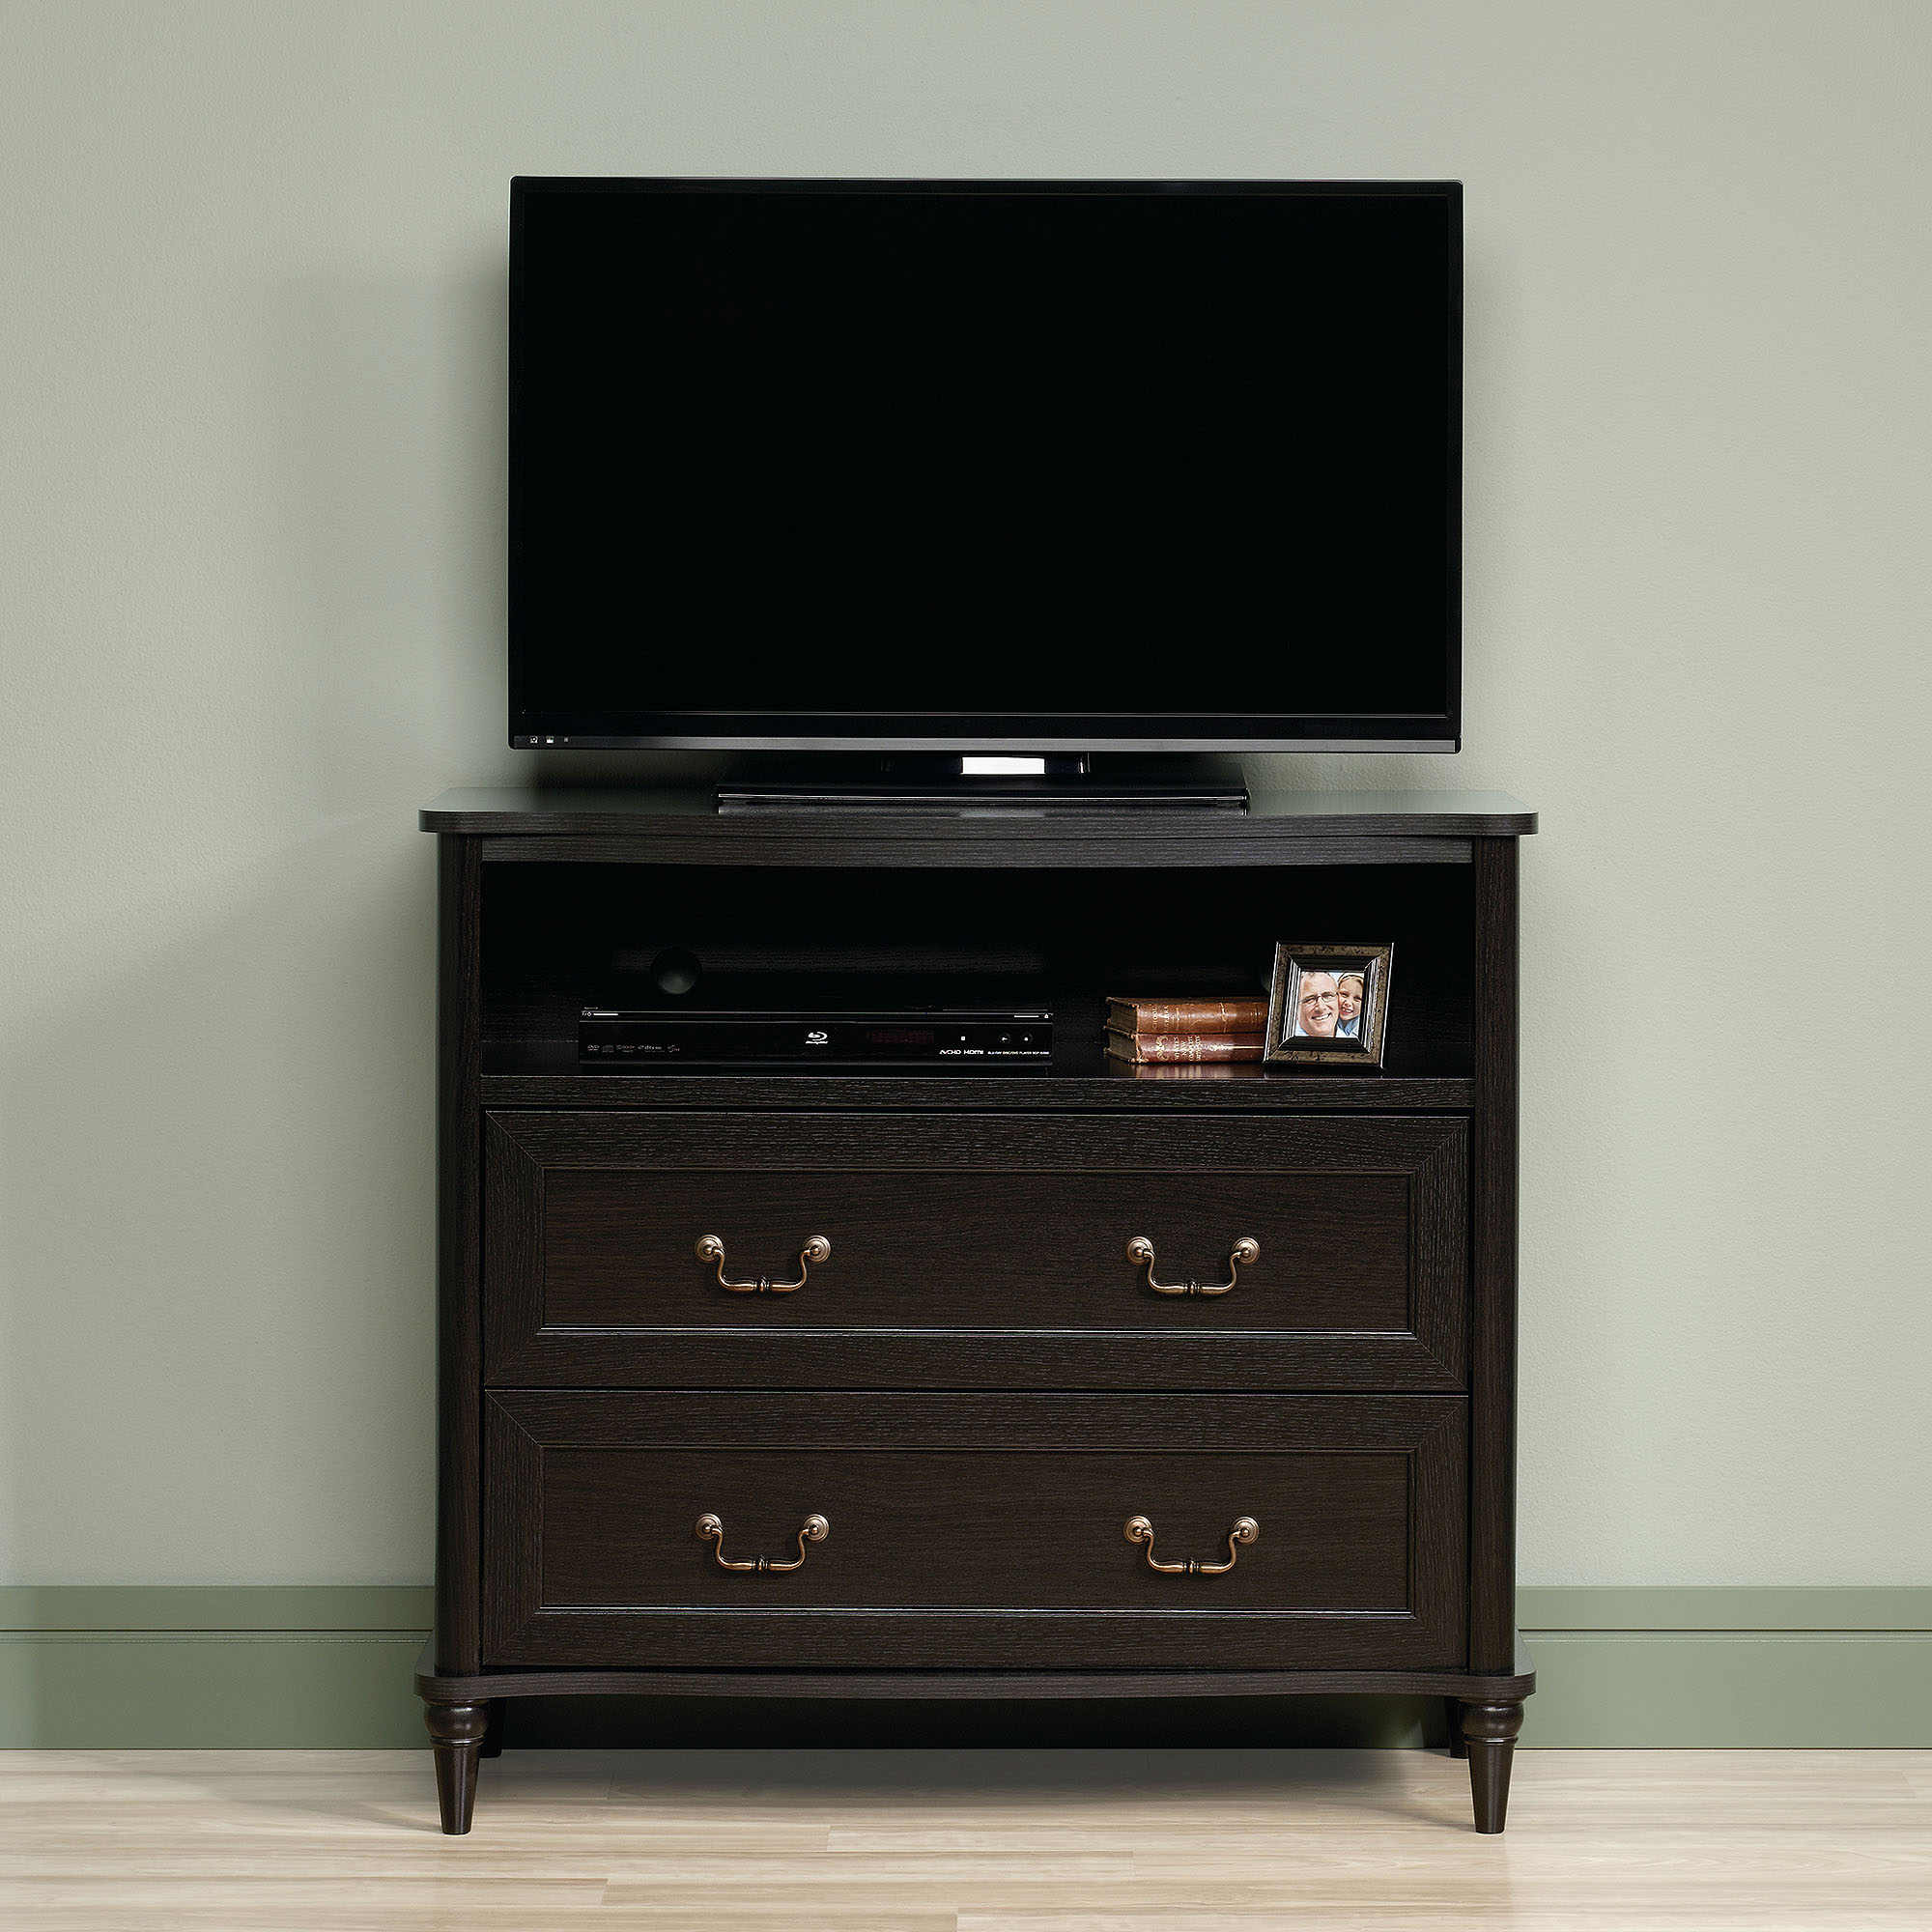 Sauder Wakefield Wind Oak Highboy TV Stand for TVs up to 42""